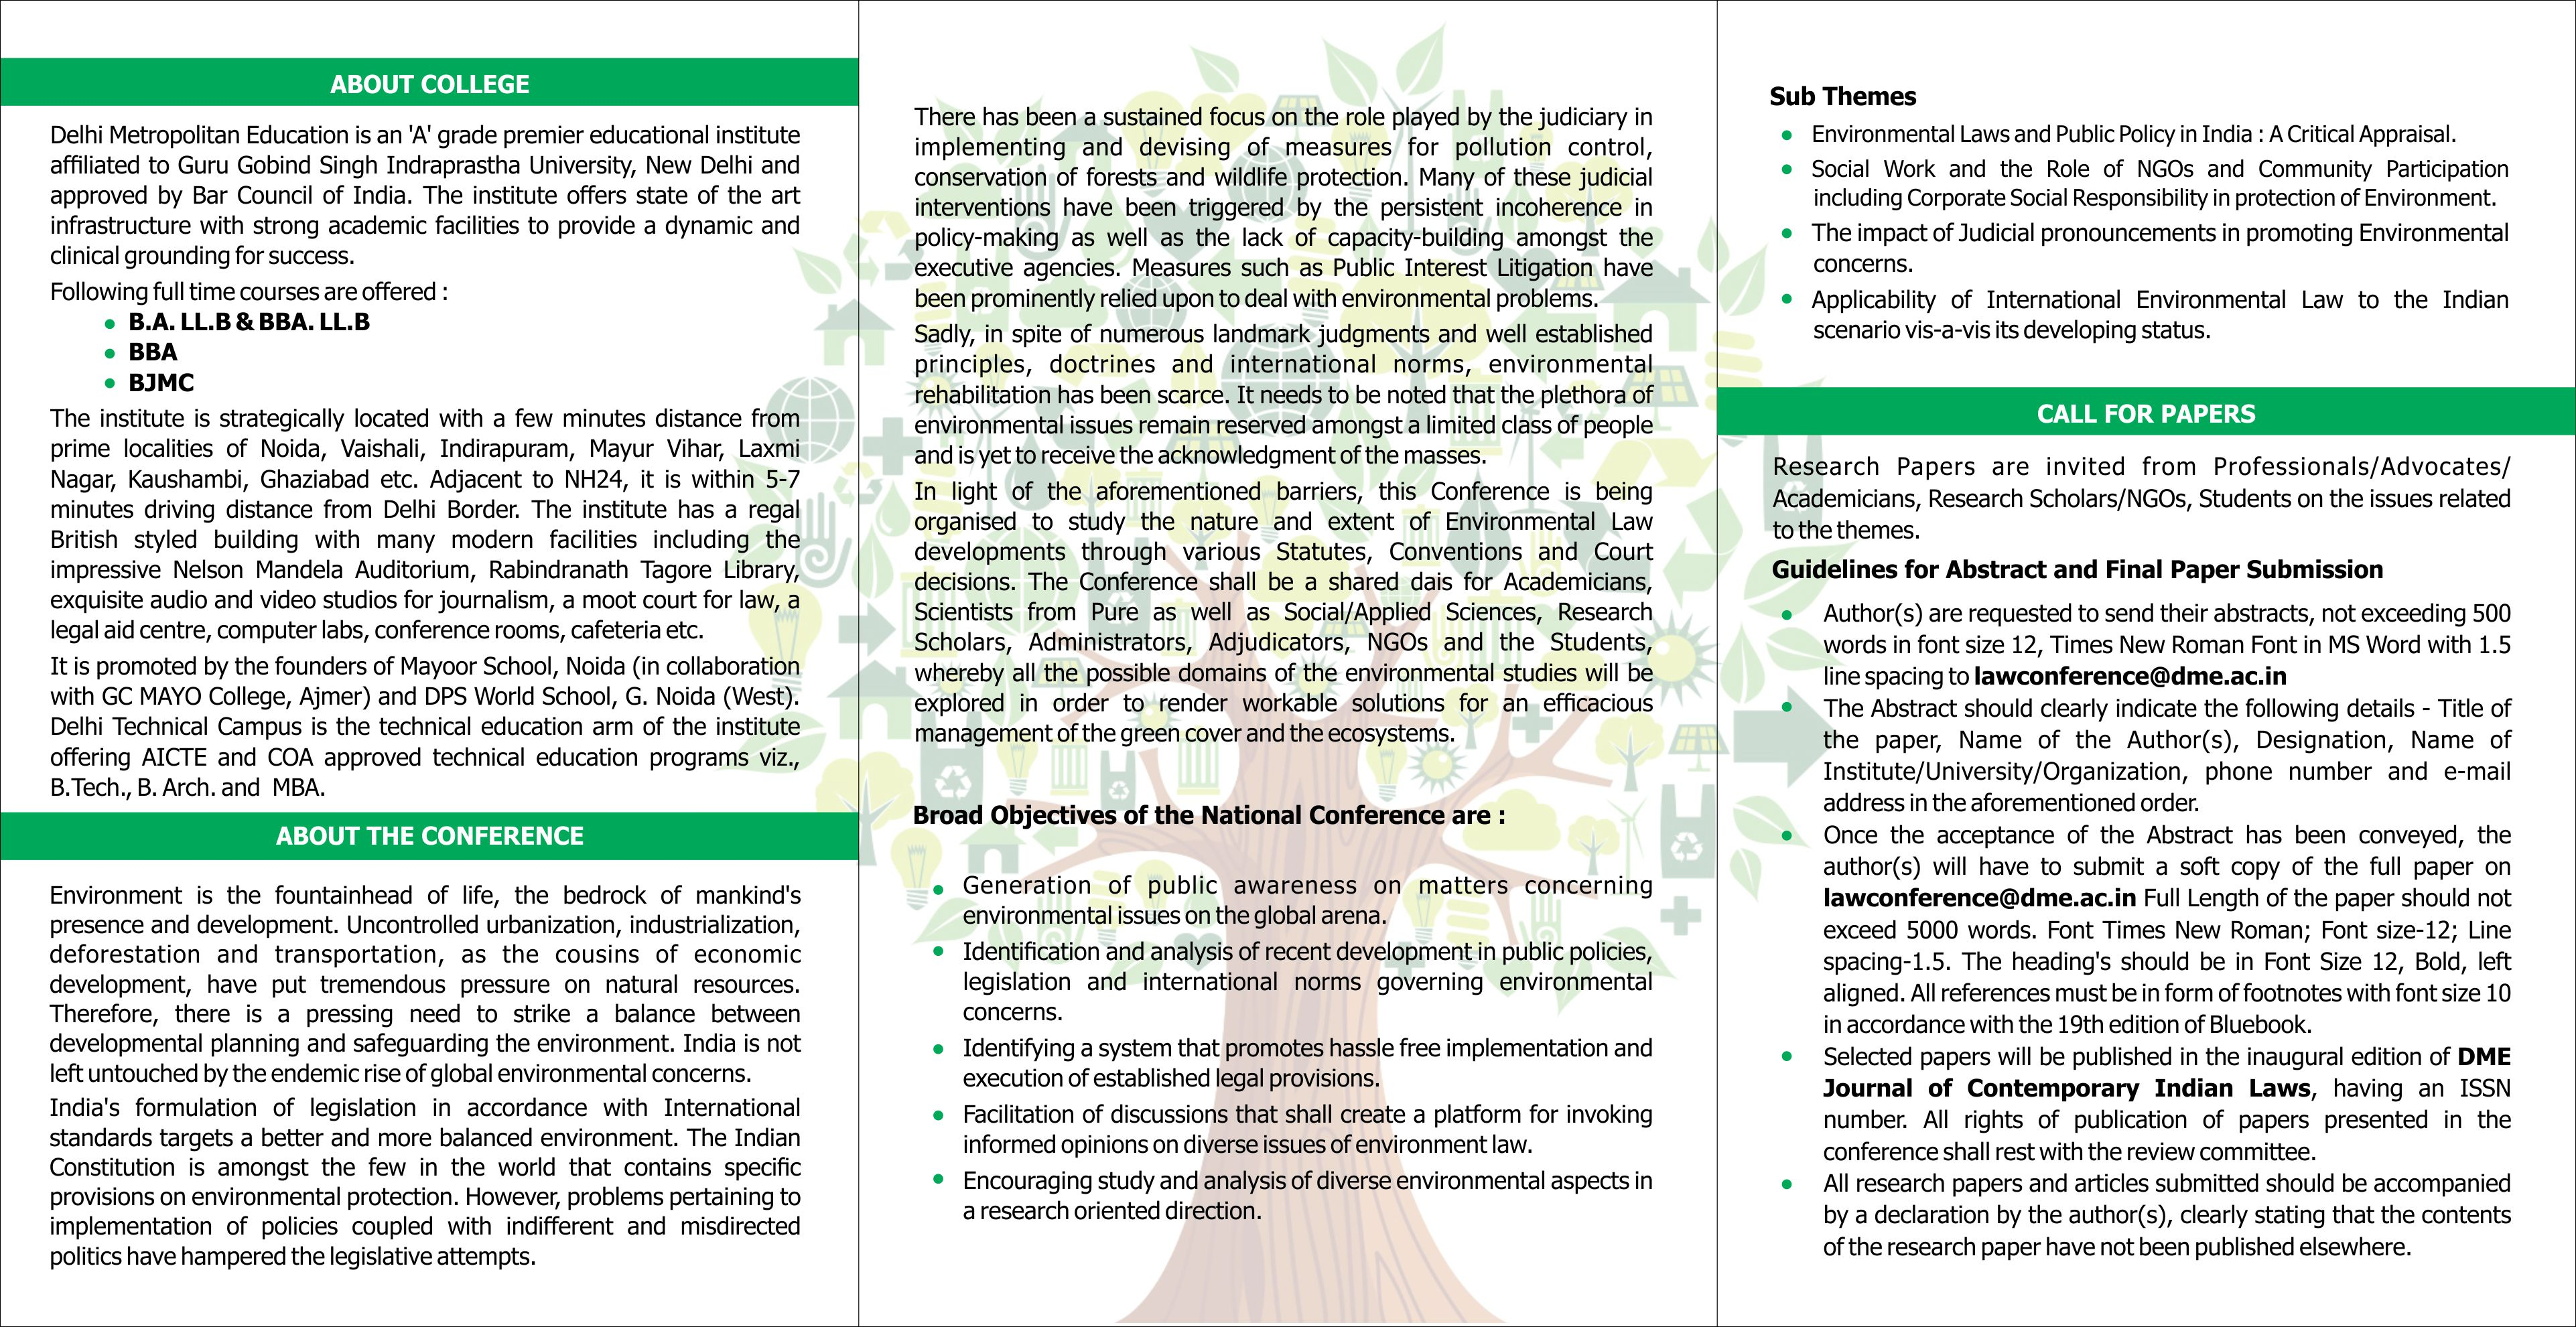 call for papers dme conference on environmental jurisprudence in dme conference on environmental jurisprudence in